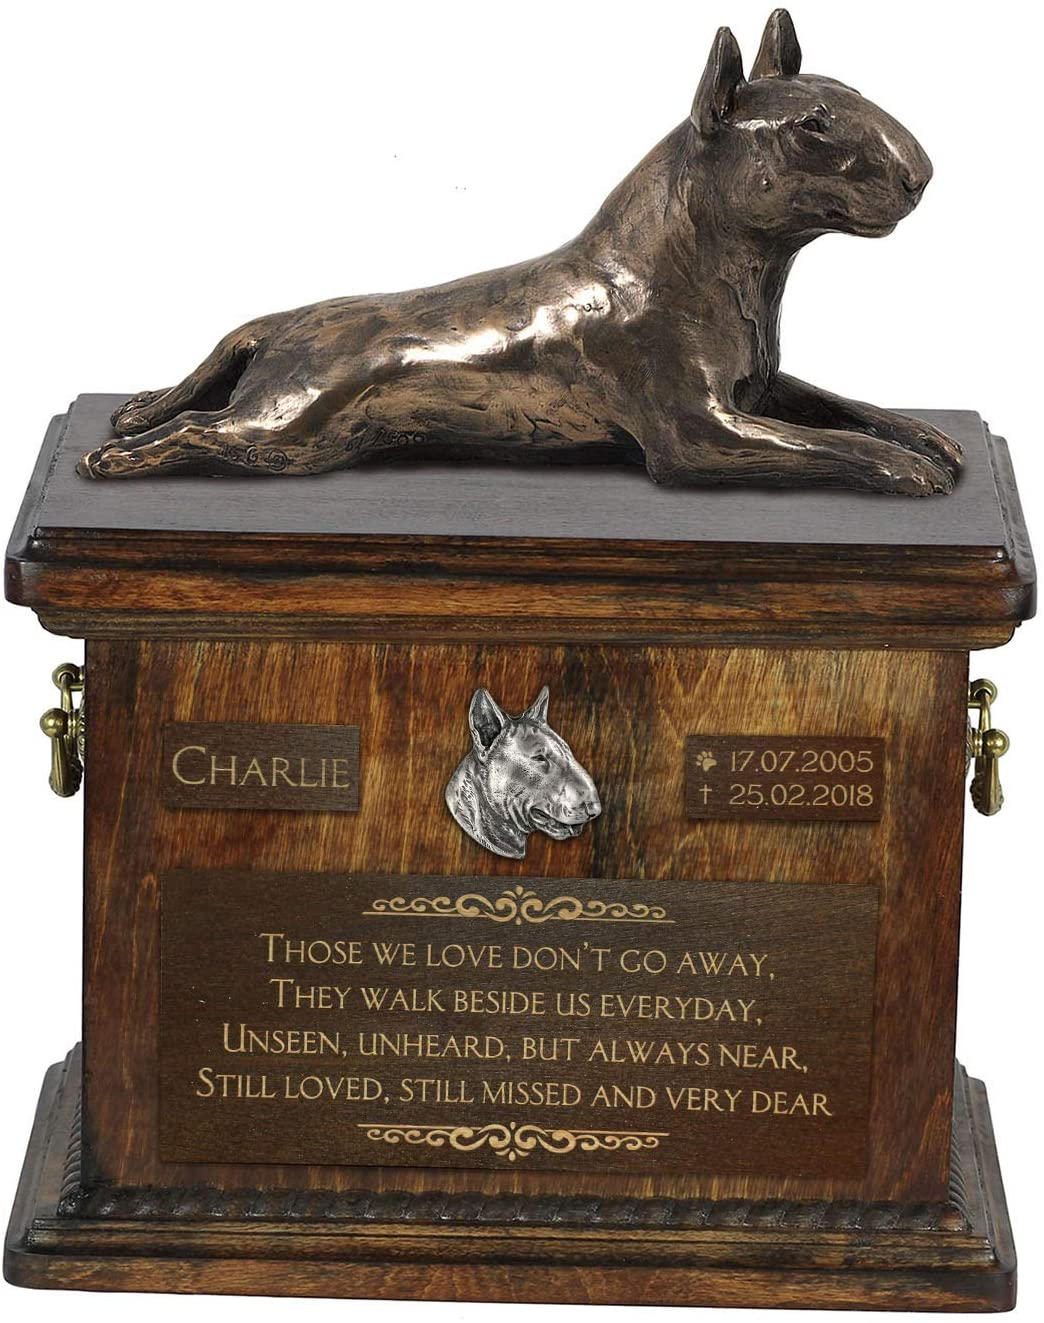 Bull Terrier Lying 2, Urn for Dog Ashes Memorial with Statue, Pet's Name and Quote - ArtDog Personalized